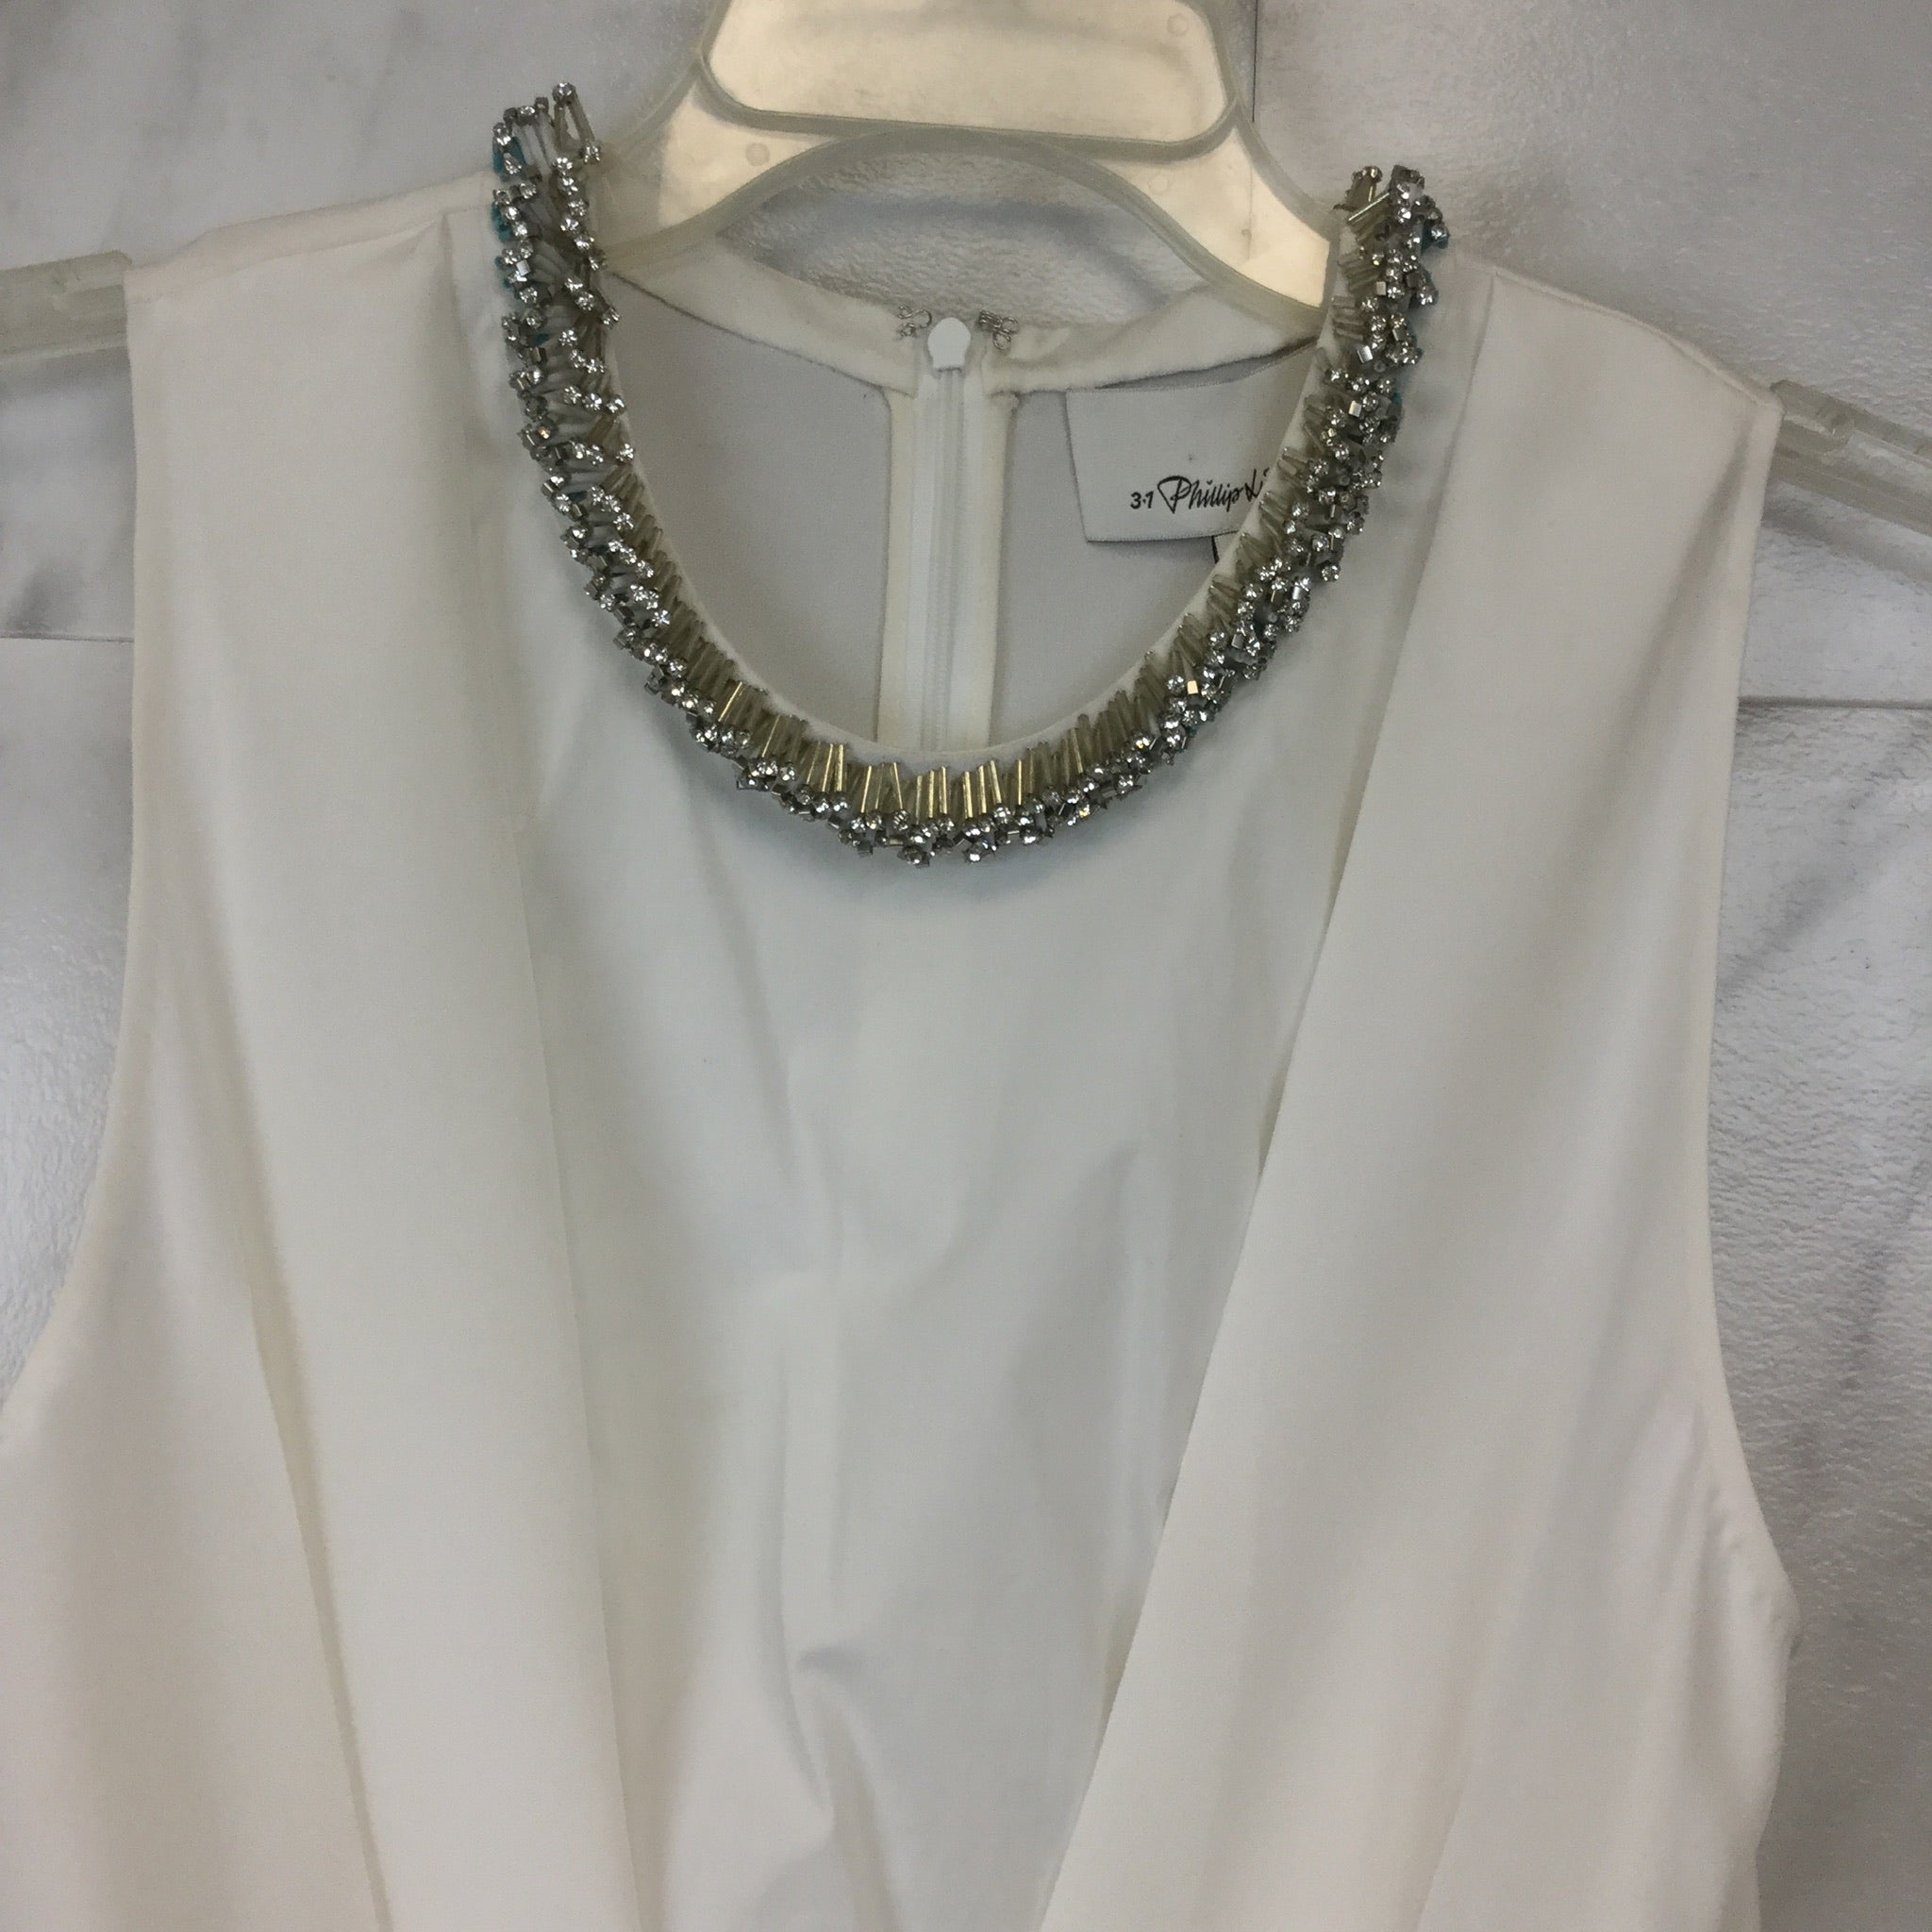 3.1 Phillip Lim Embellish Silk and Stretch-Cotton Top - size 4